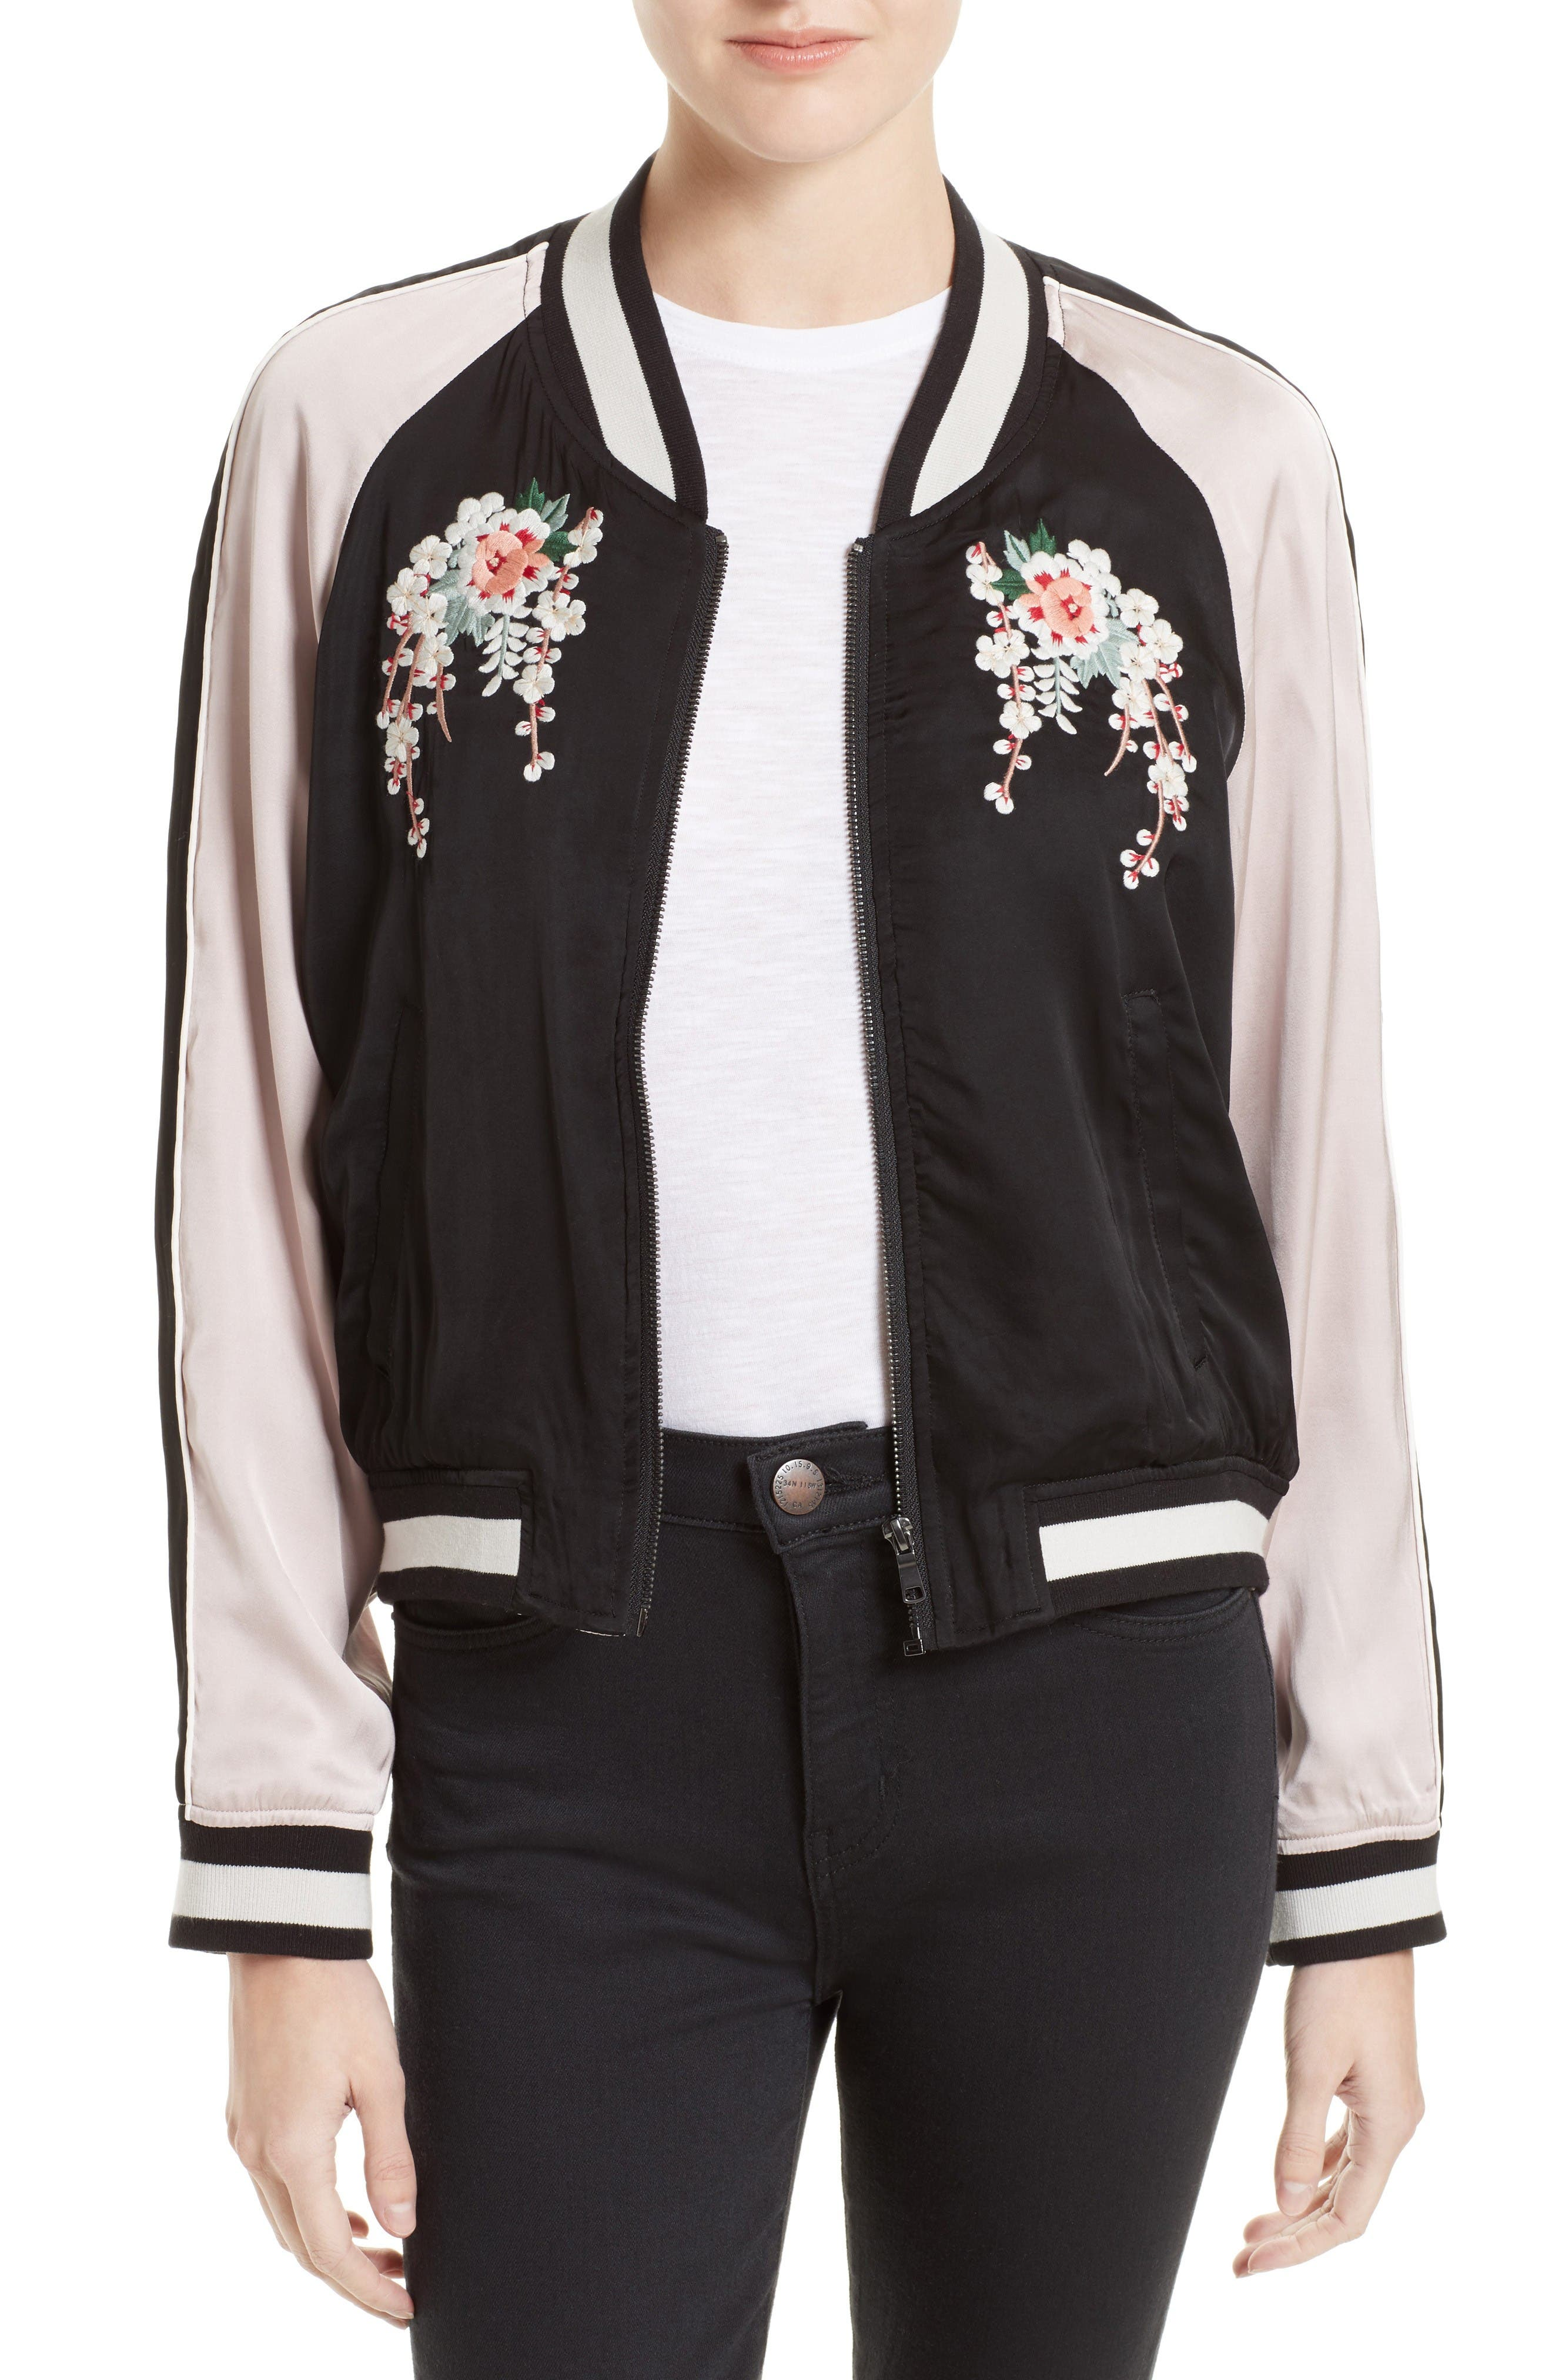 Alternate Image 1 Selected - Joie Juanita Embroidered Bomber Jacket